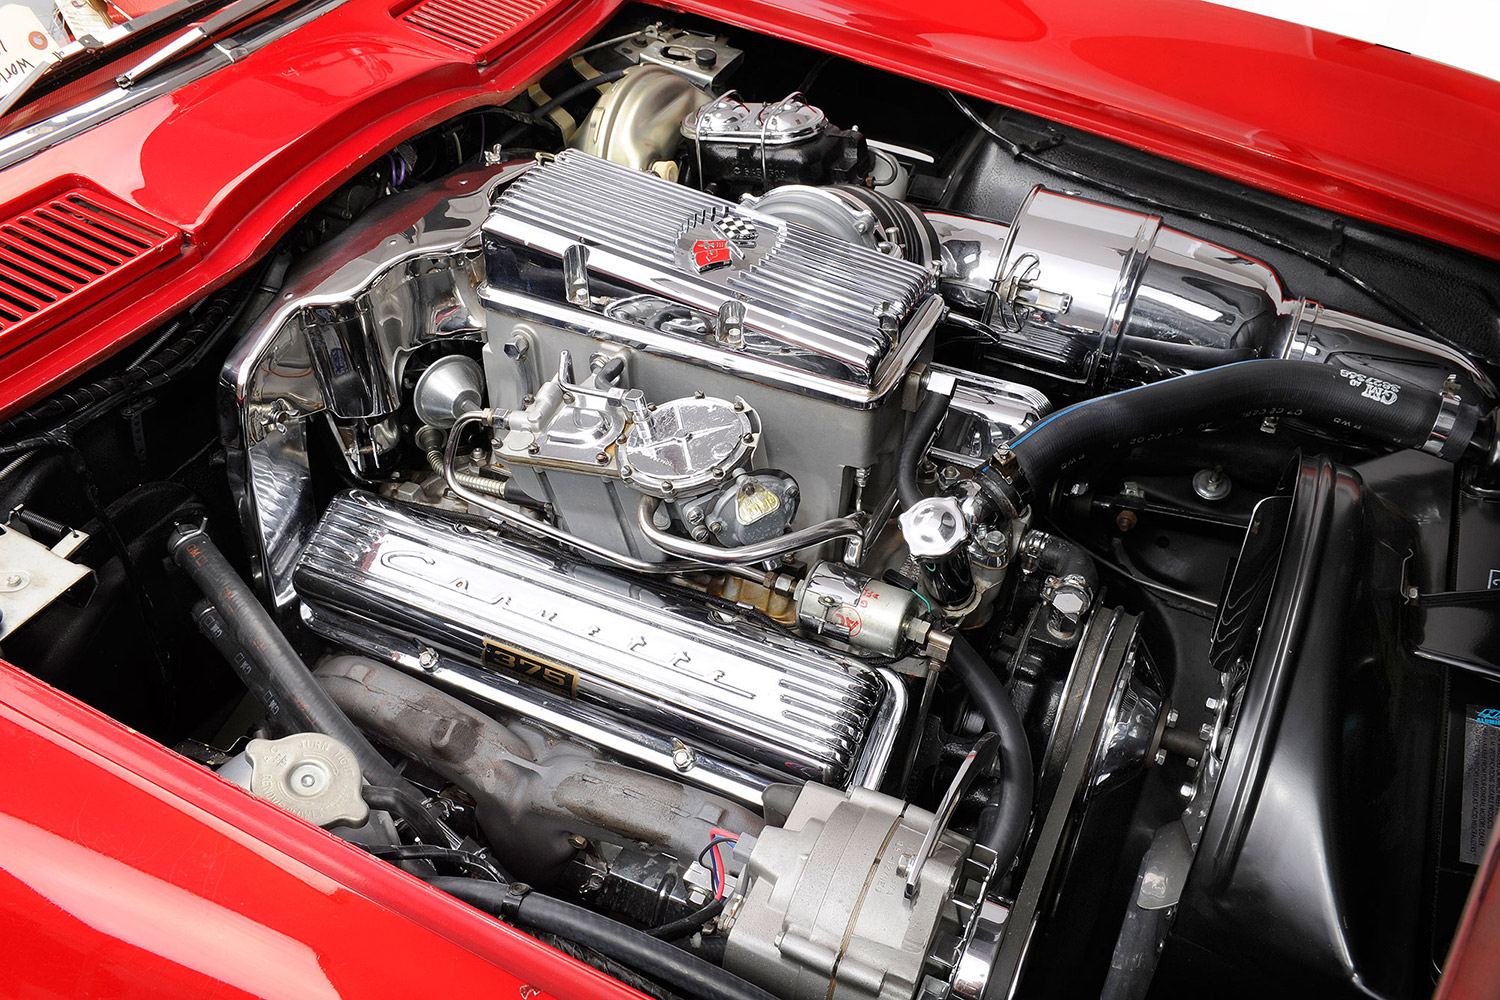 Top 5 Small Block Chevy Engines Of The Muscle Car Era